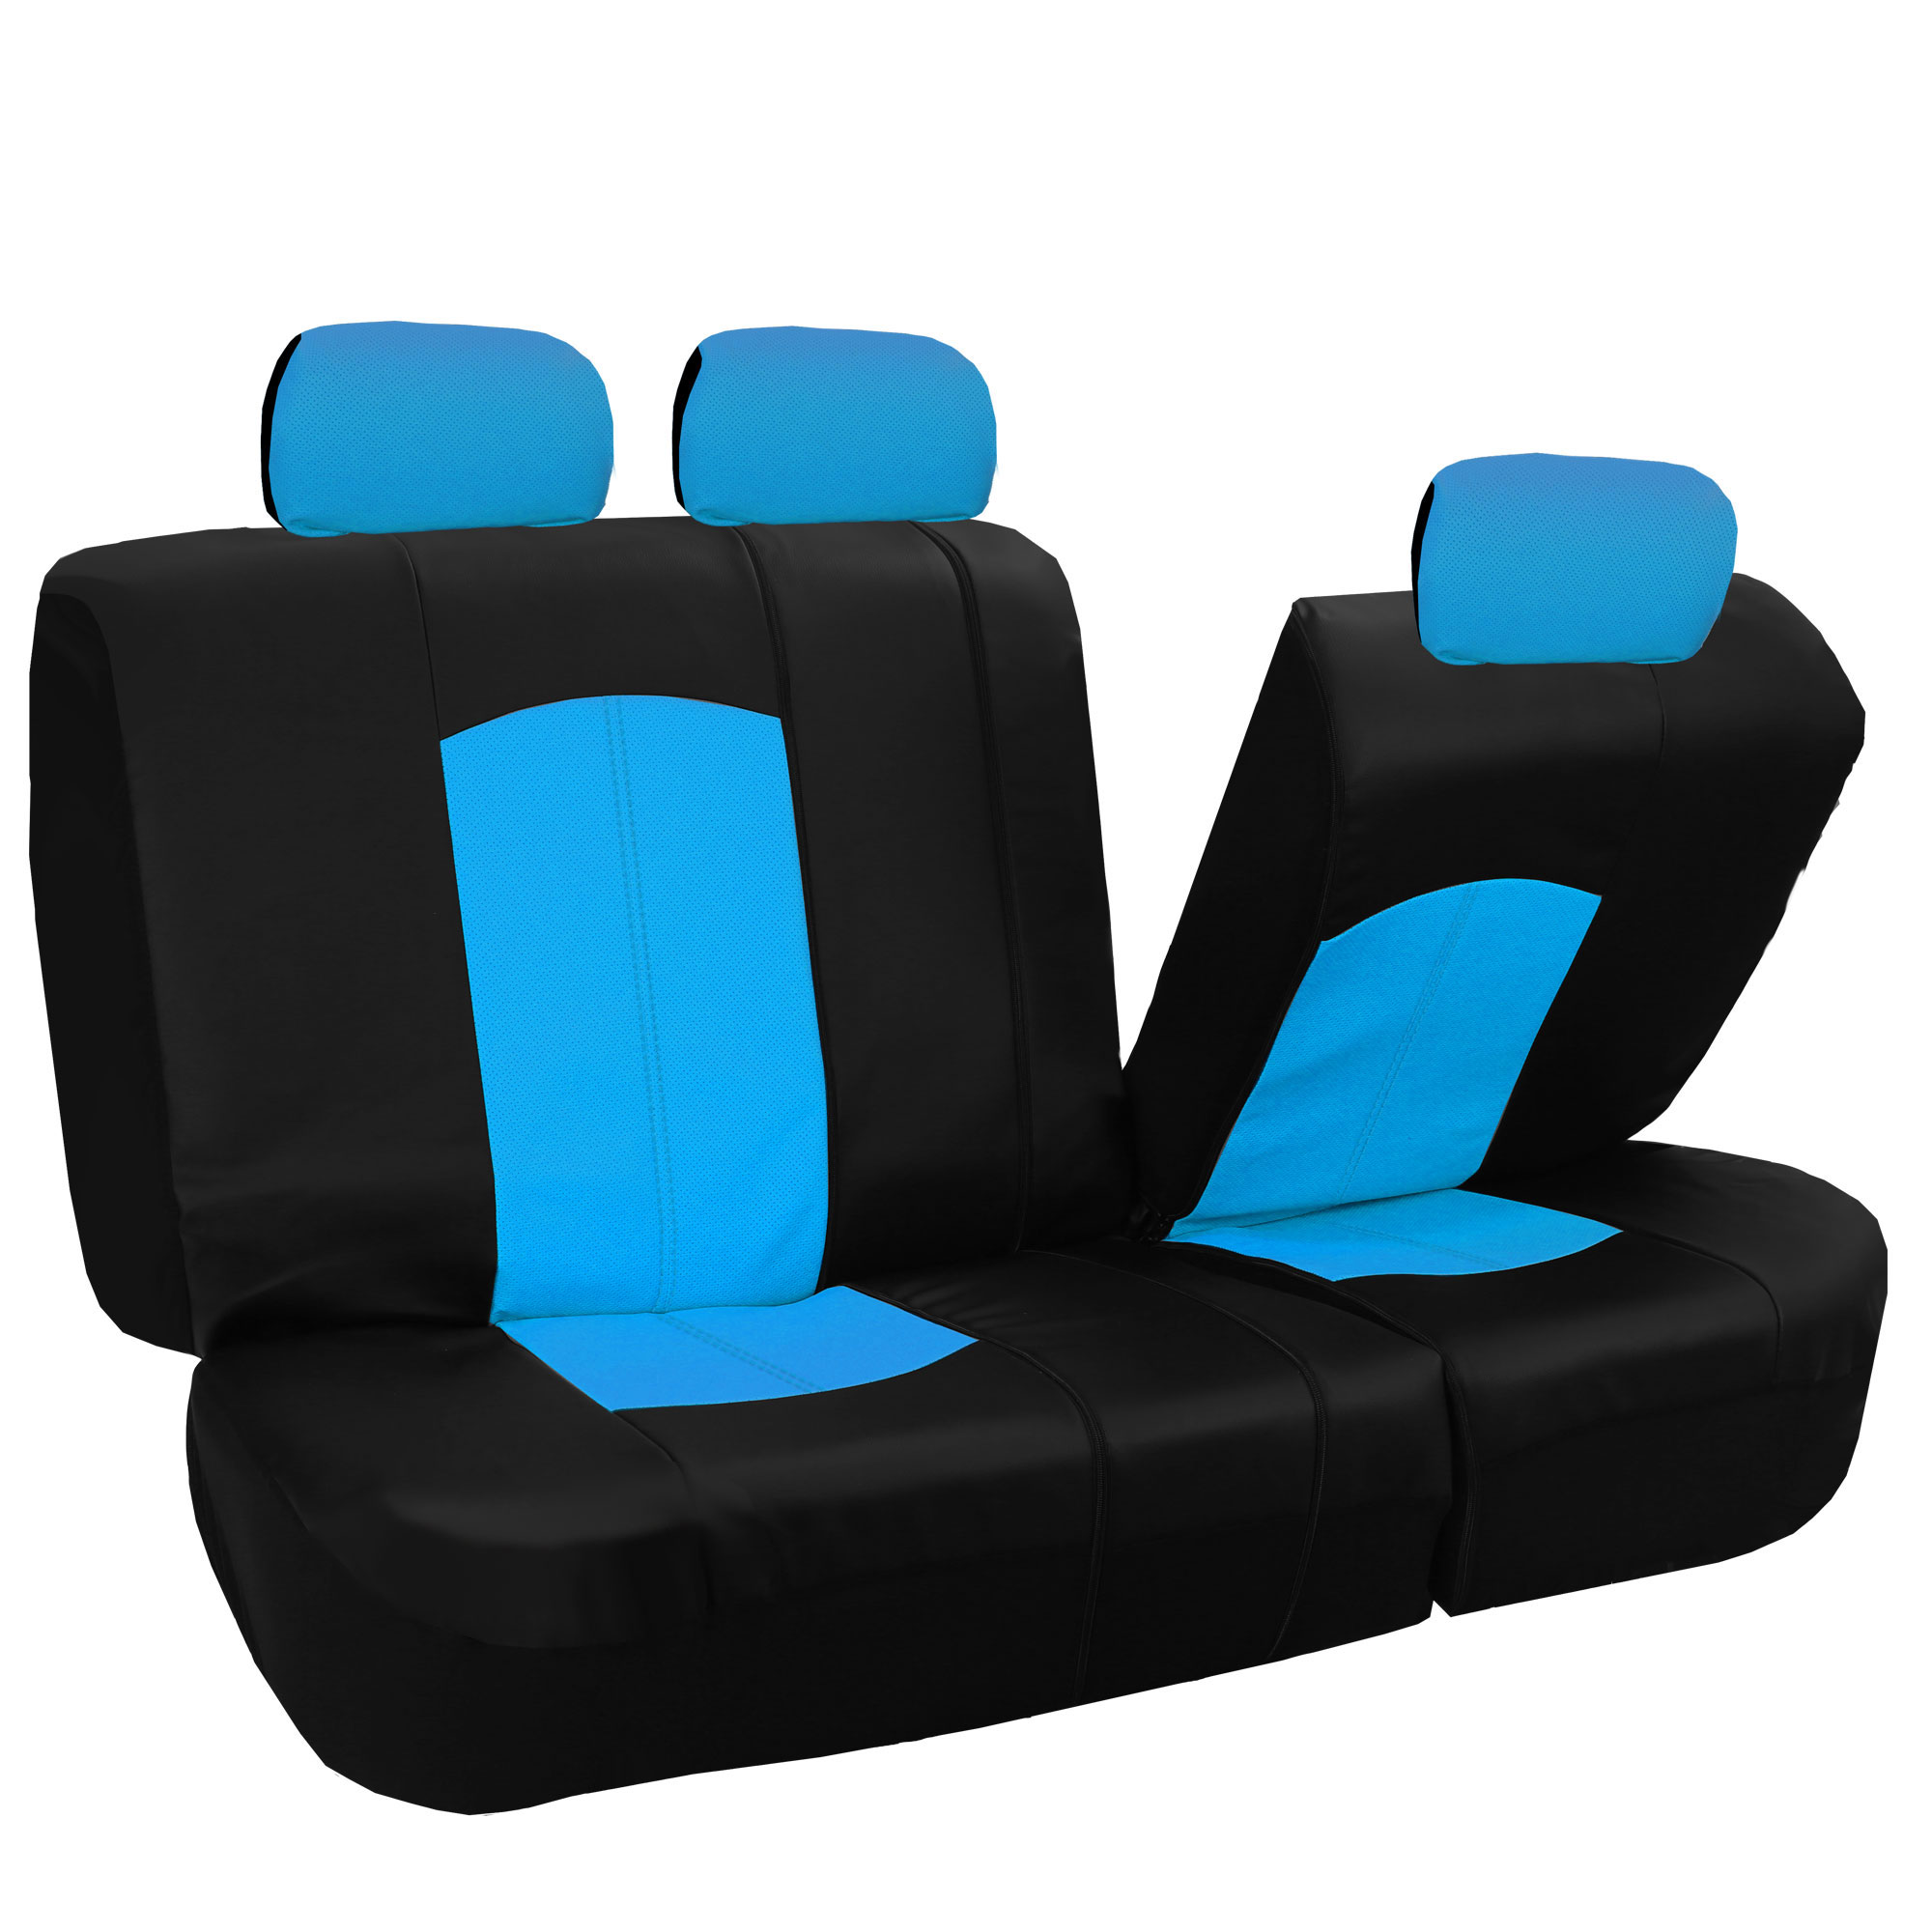 automotive car seat covers sideless blue. Black Bedroom Furniture Sets. Home Design Ideas